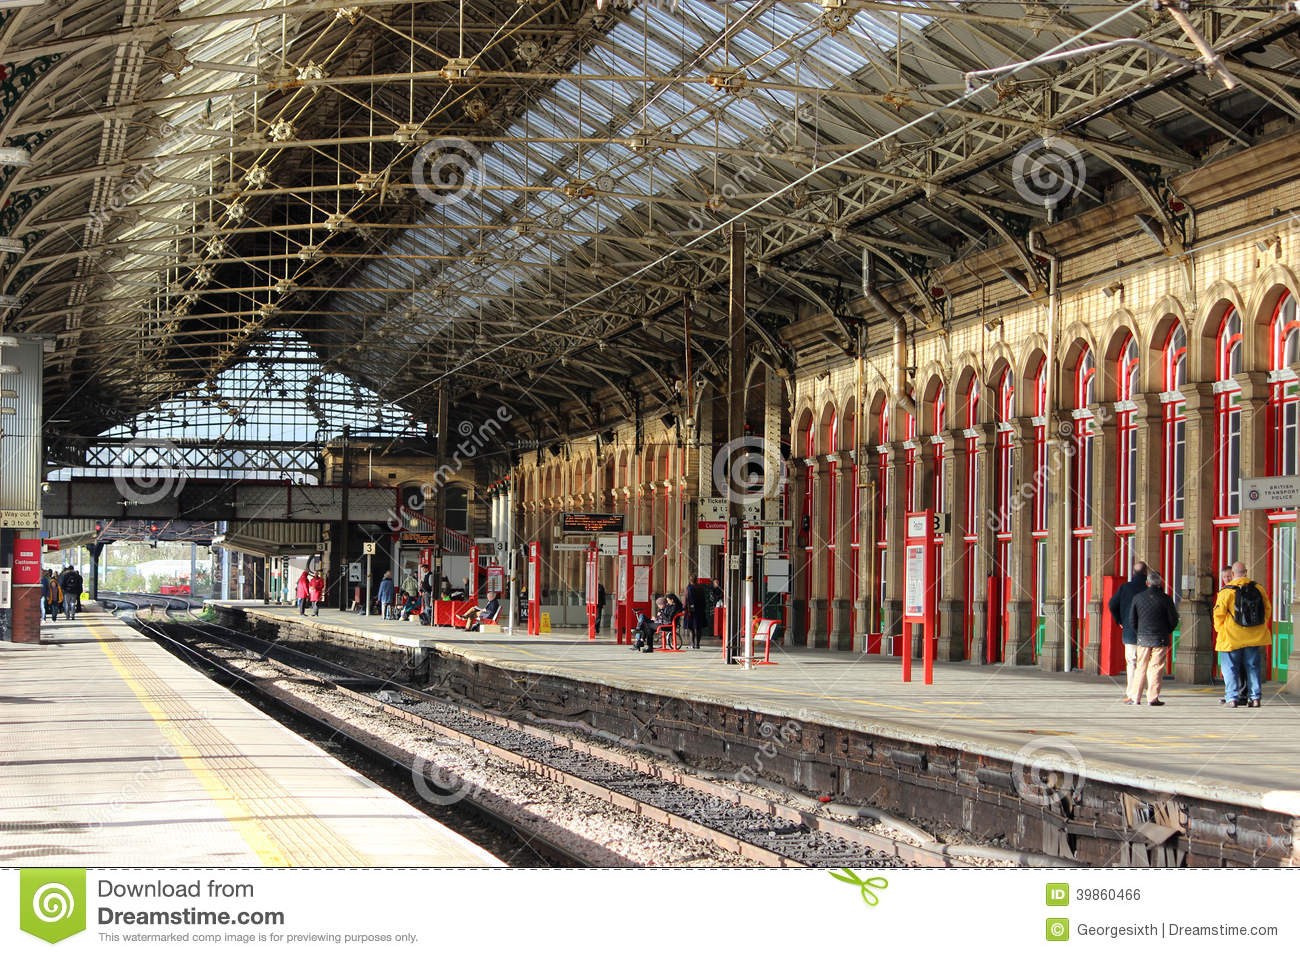 84e13854c View of the inside of Preston railway station in Lancashire, England  looking north from platform 2 with the tracks for platforms 2 & 3 and  platform 3 with ...